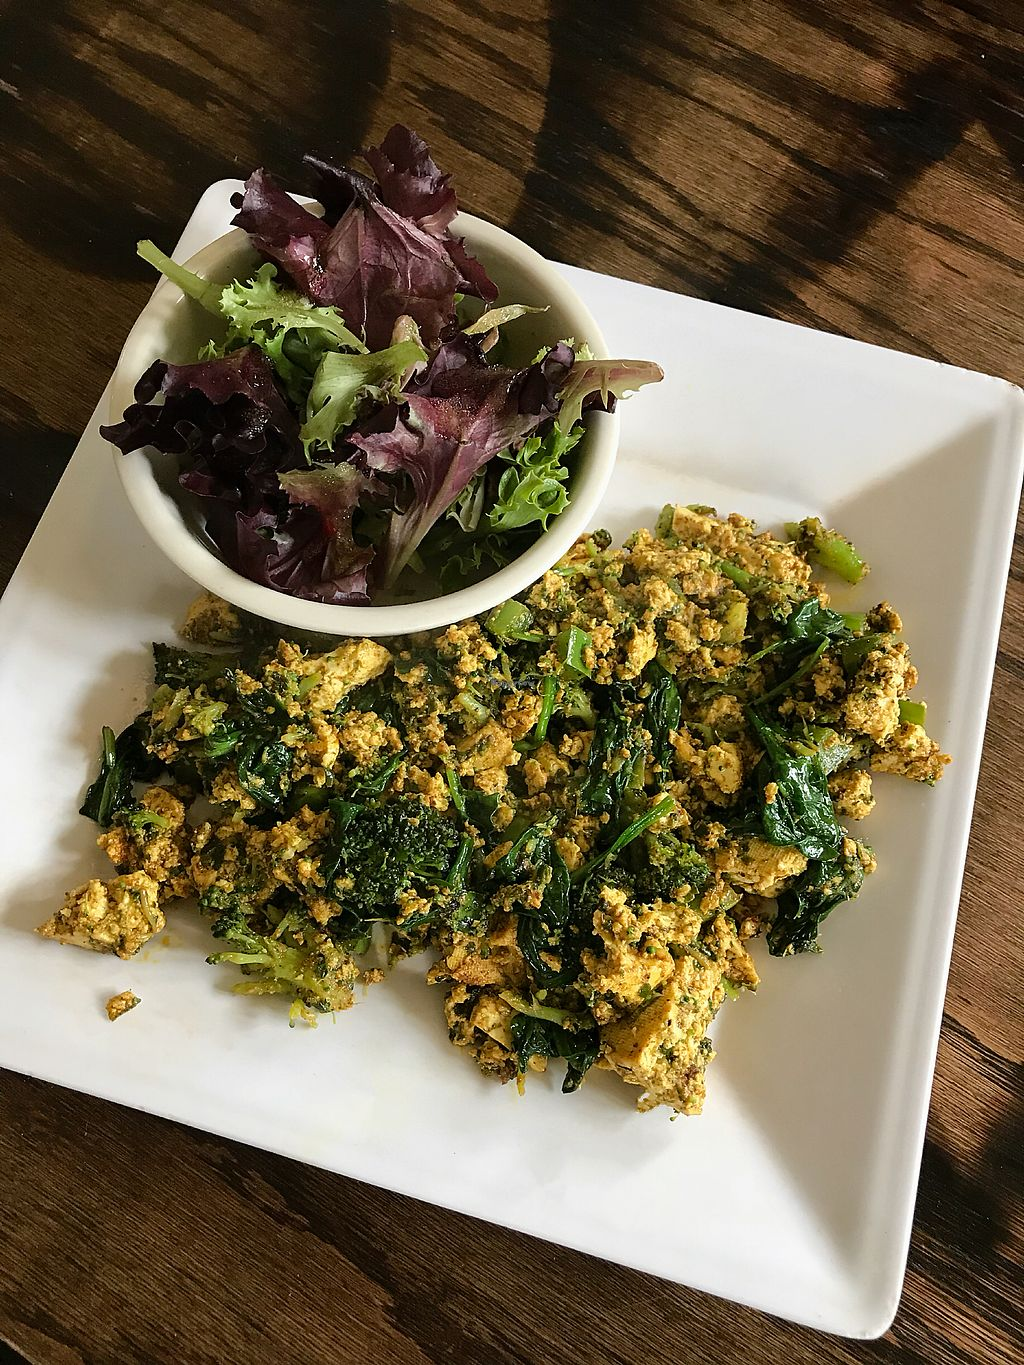 """Photo of Strong Hearts Cafe  by <a href=""""/members/profile/Dimanta"""">Dimanta</a> <br/>Green Tofu Scramble $8.50 <br/> March 14, 2018  - <a href='/contact/abuse/image/14197/370351'>Report</a>"""